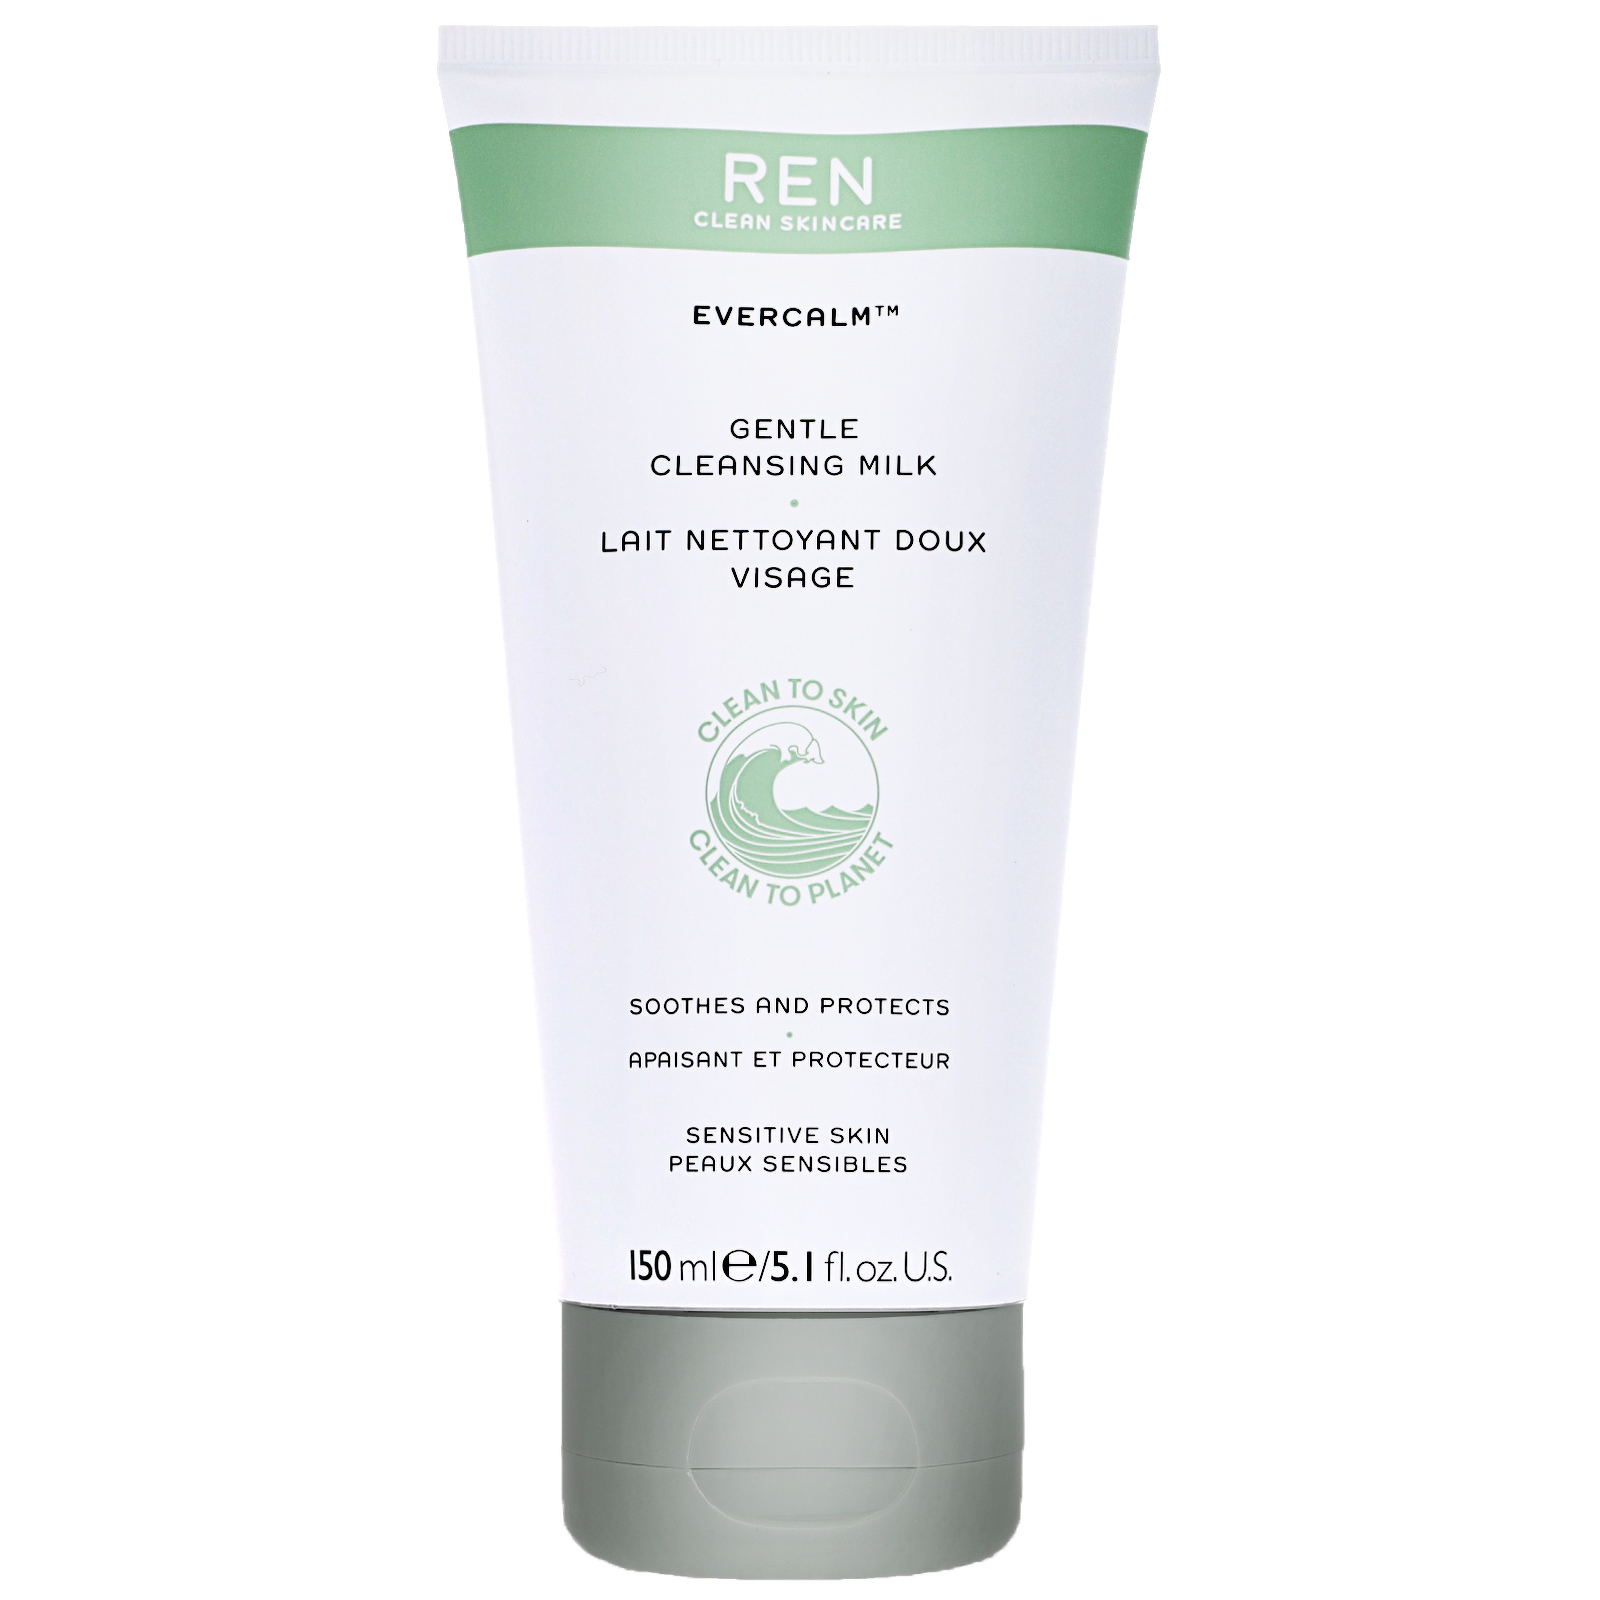 REN Clean Skincare Face Evercalm Gentle Cleansing Milk 150ml / 5.1 fl.oz.